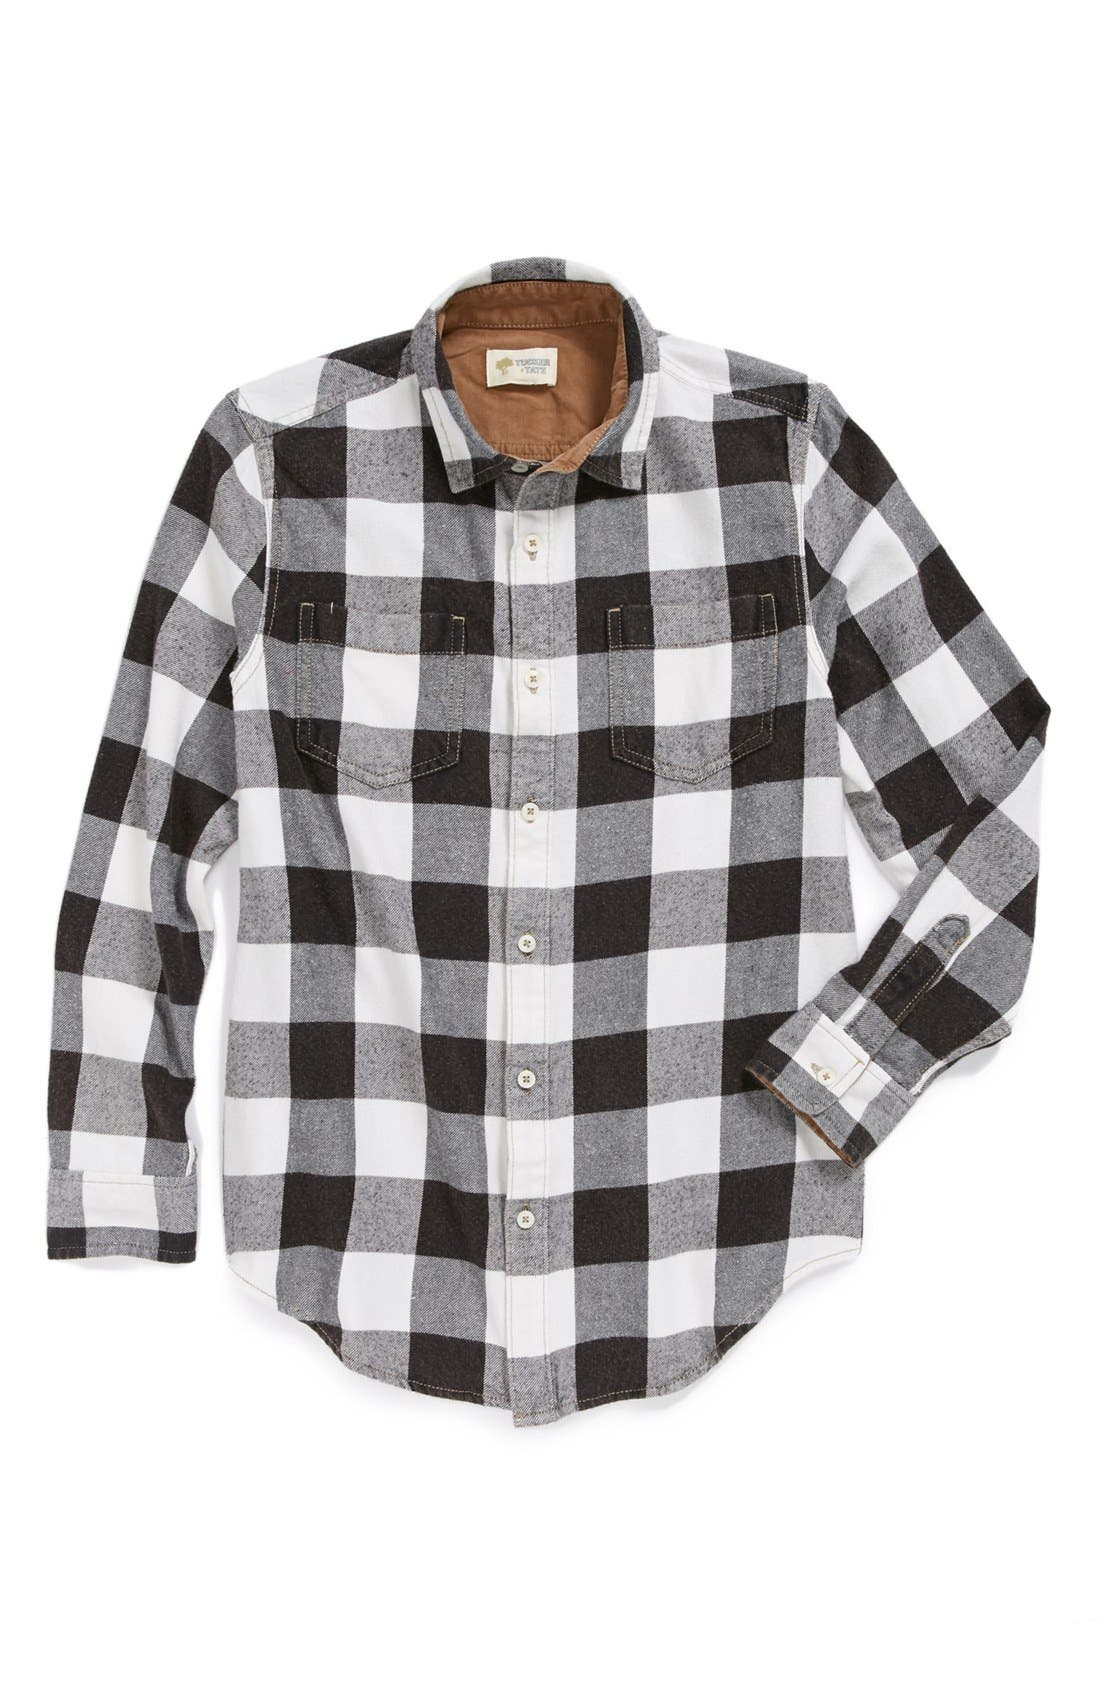 Alternate Image 1 Selected - Tucker + Tate 'Erland' Flannel Shirt (Big Boys)